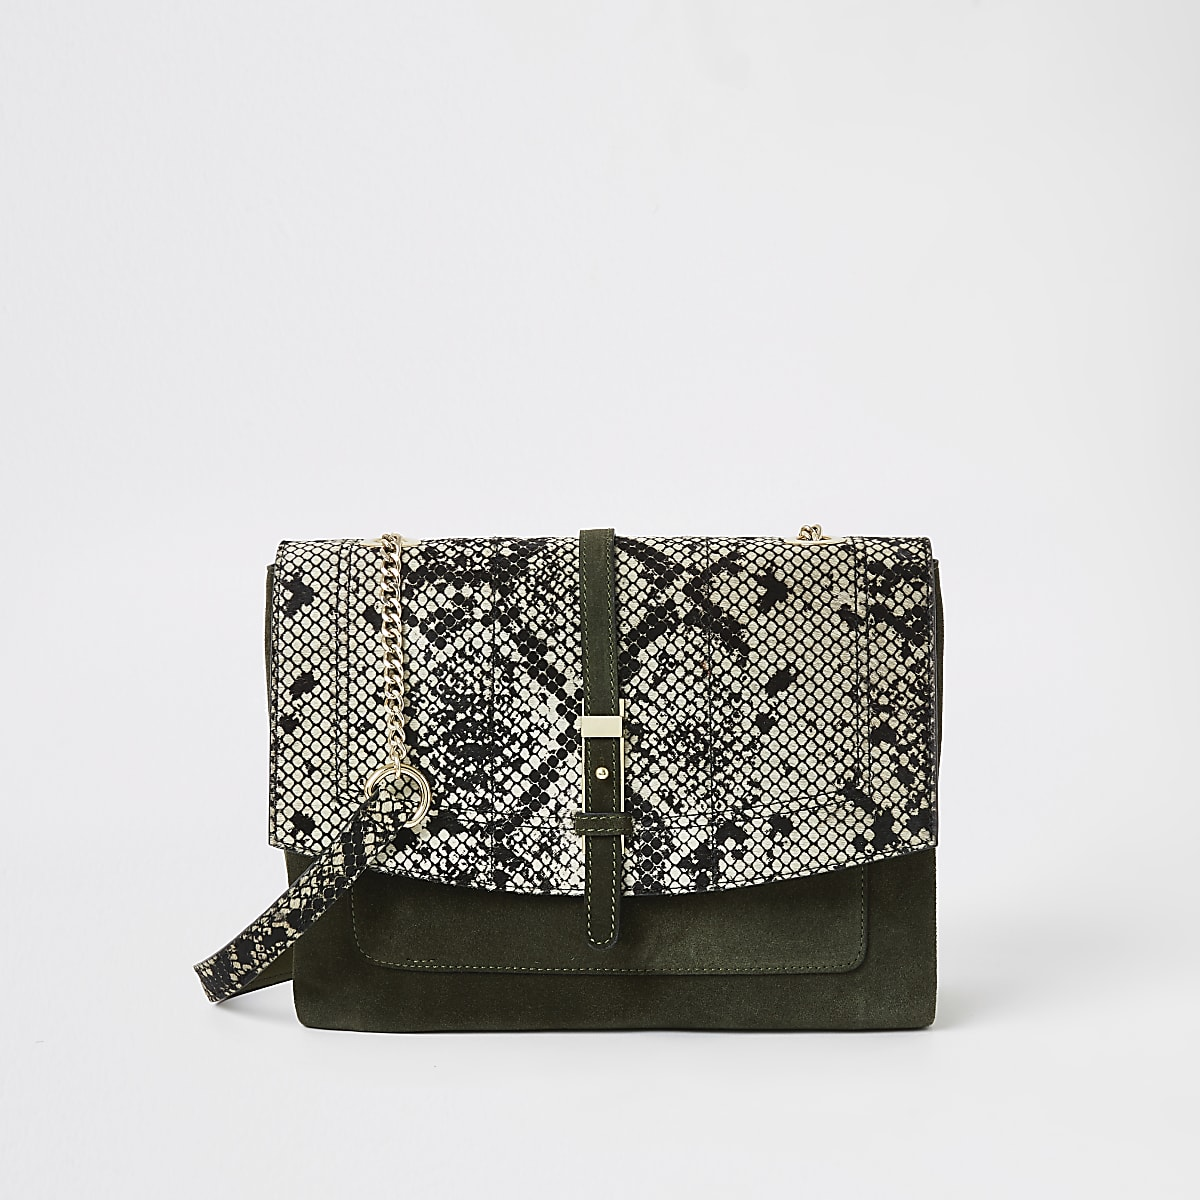 Khaki leather snake print cross body bag